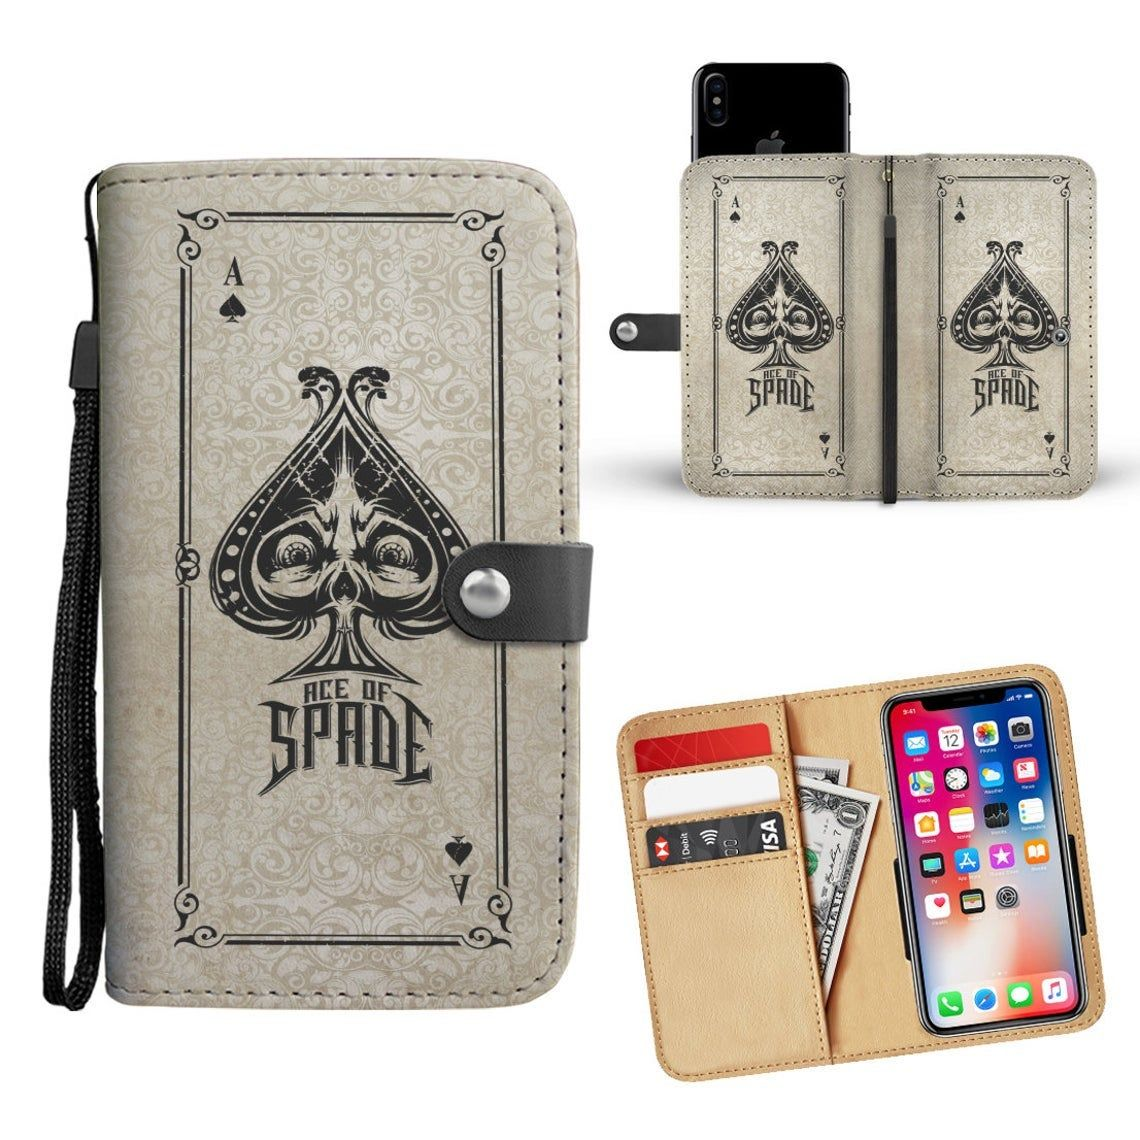 Dog Wallet Phone Case Custom Personalized Protective Cell Phone Book Cover for iPhone Samsung LG Google Huawei OnePlus